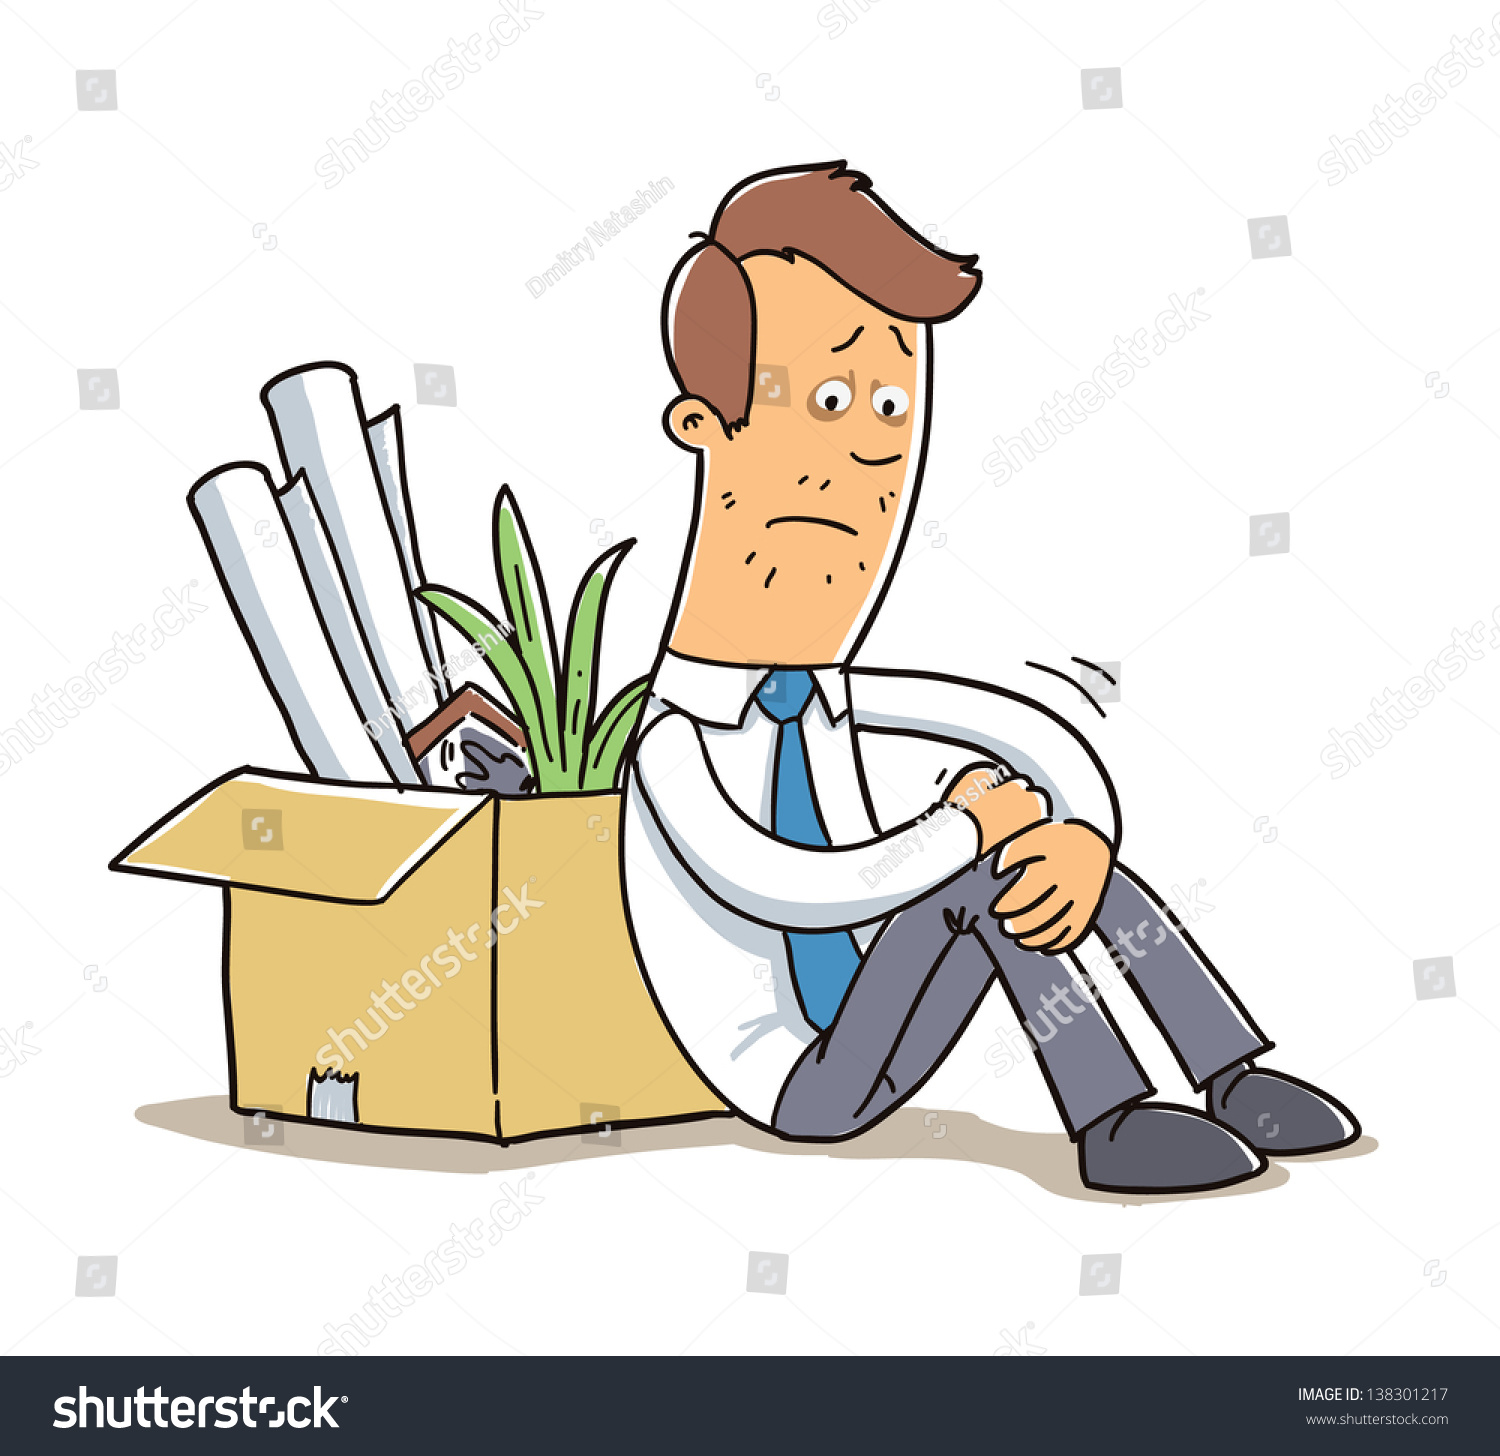 office worker fired job cartoon illustration stock vector office worker fired from job cartoon illustration isolated on white background